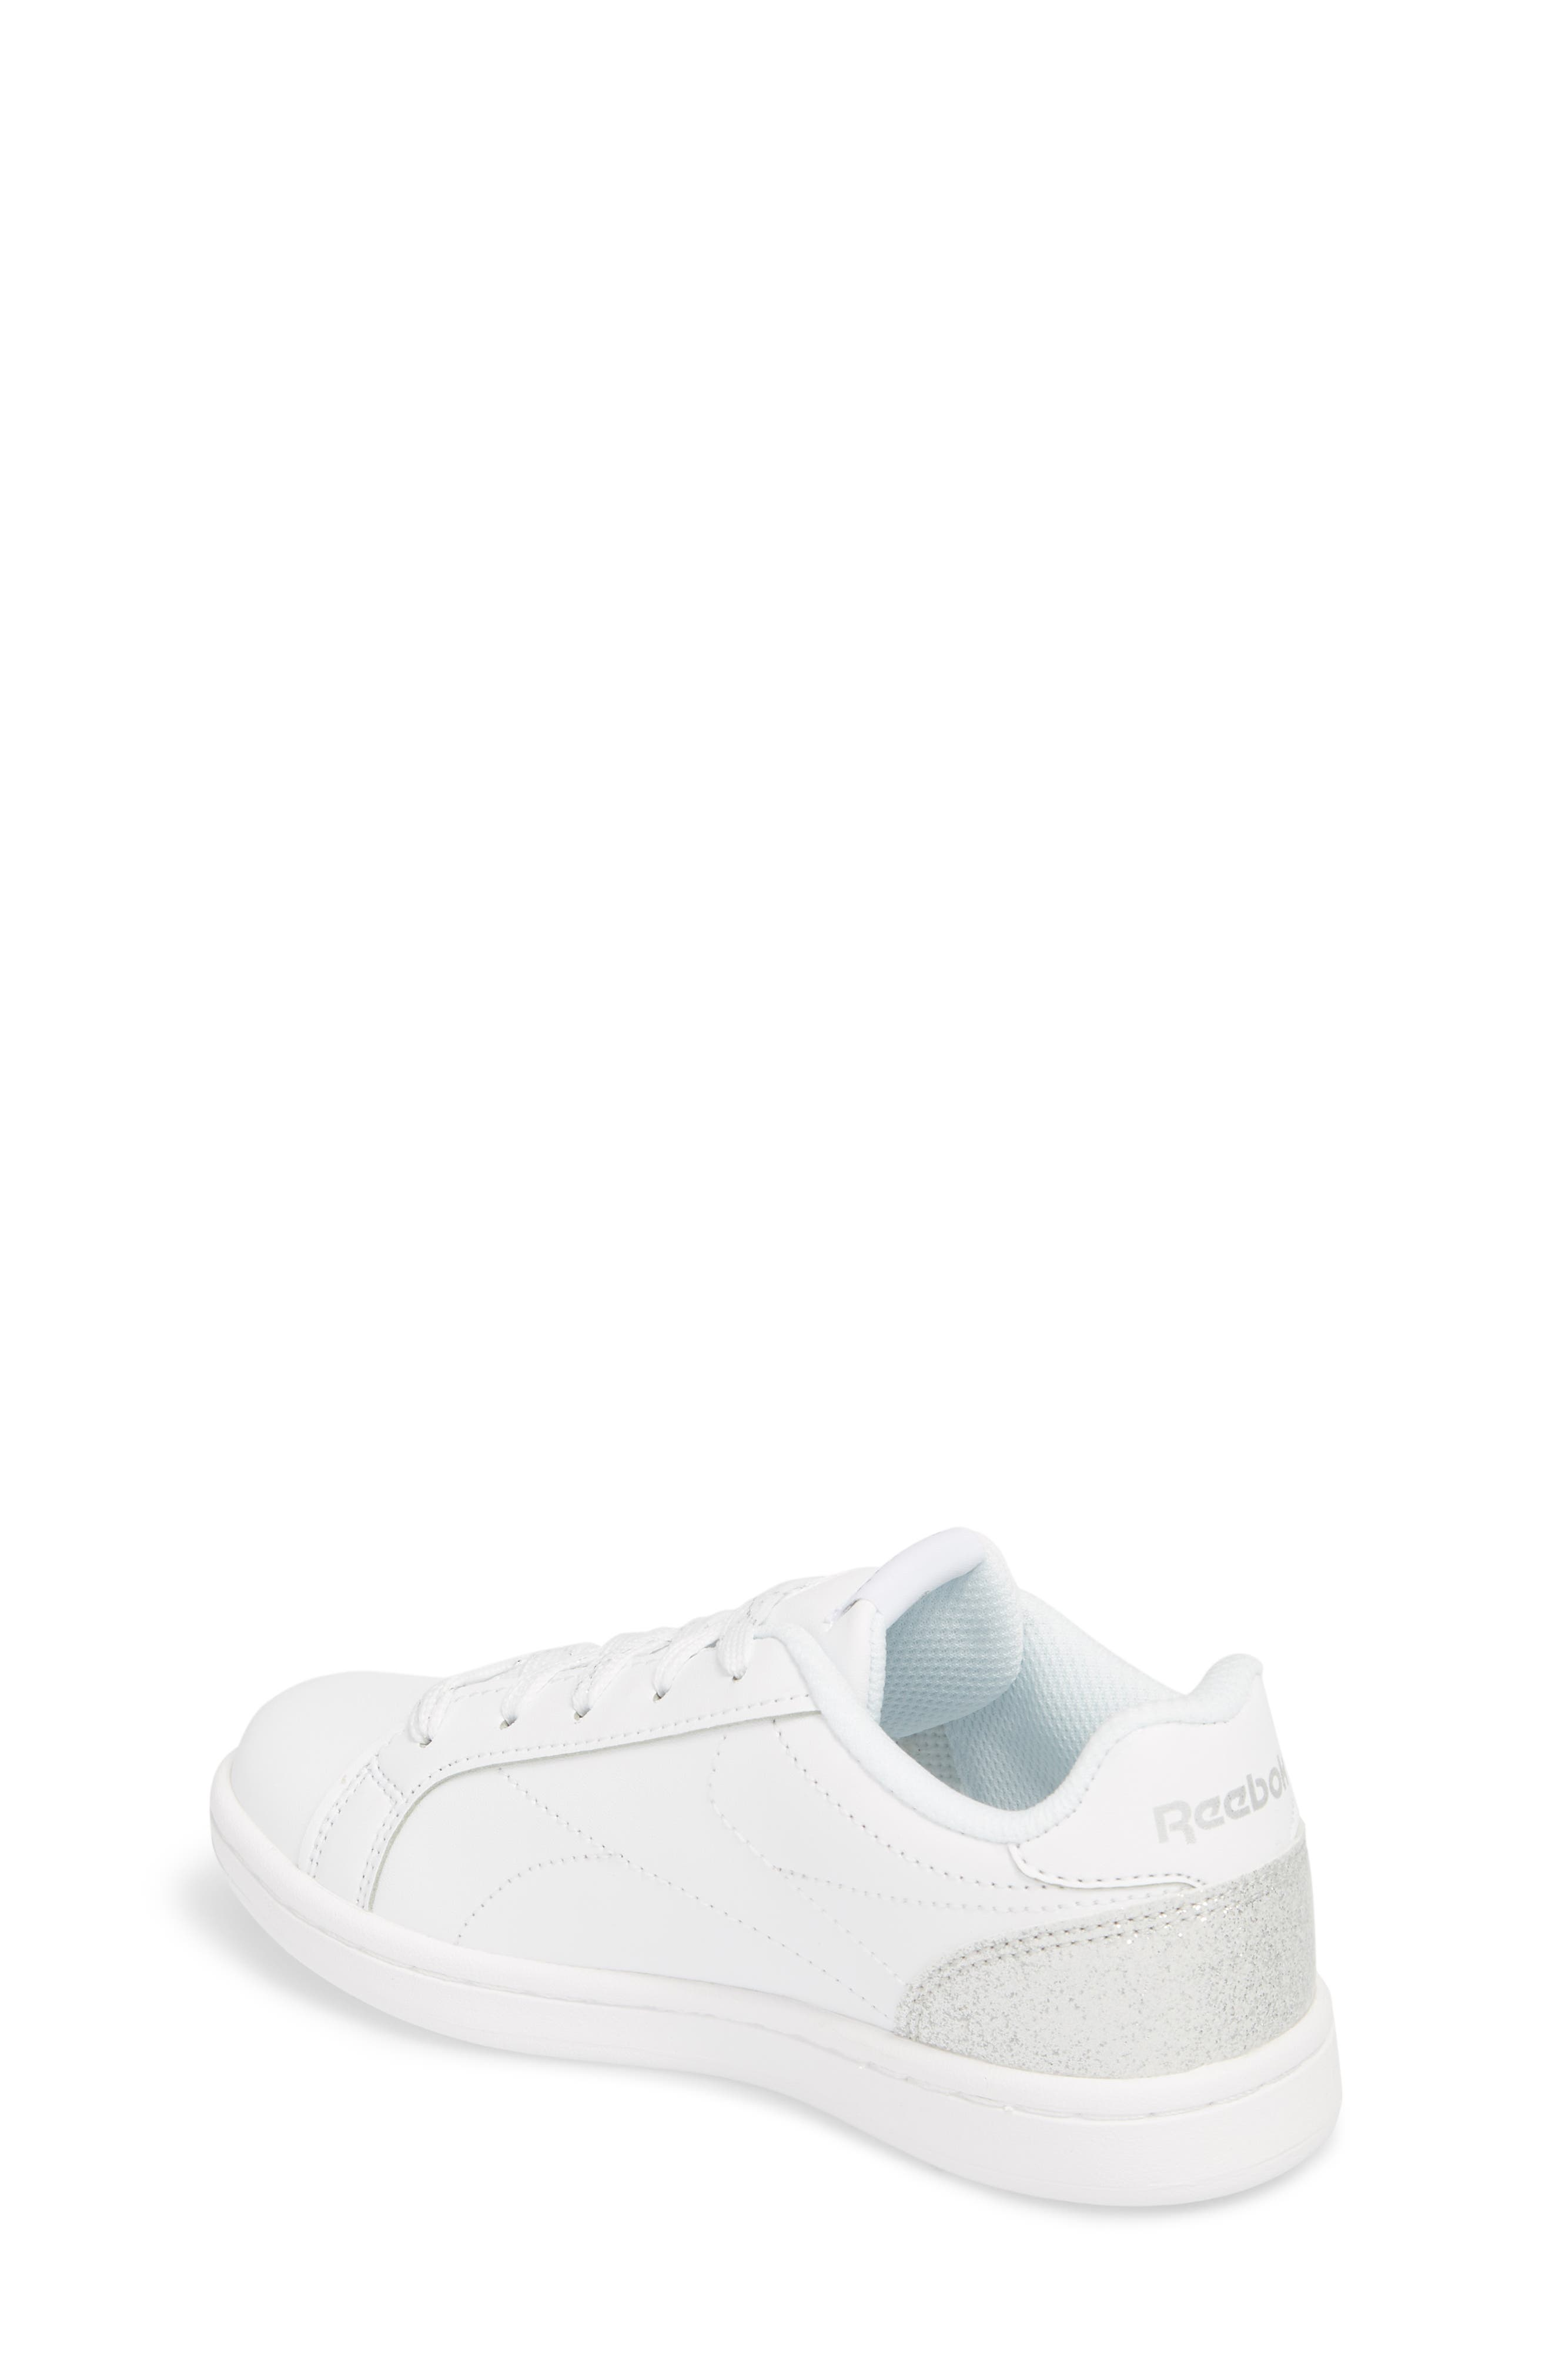 Royal Complete CLN Sneaker,                             Alternate thumbnail 2, color,                             100